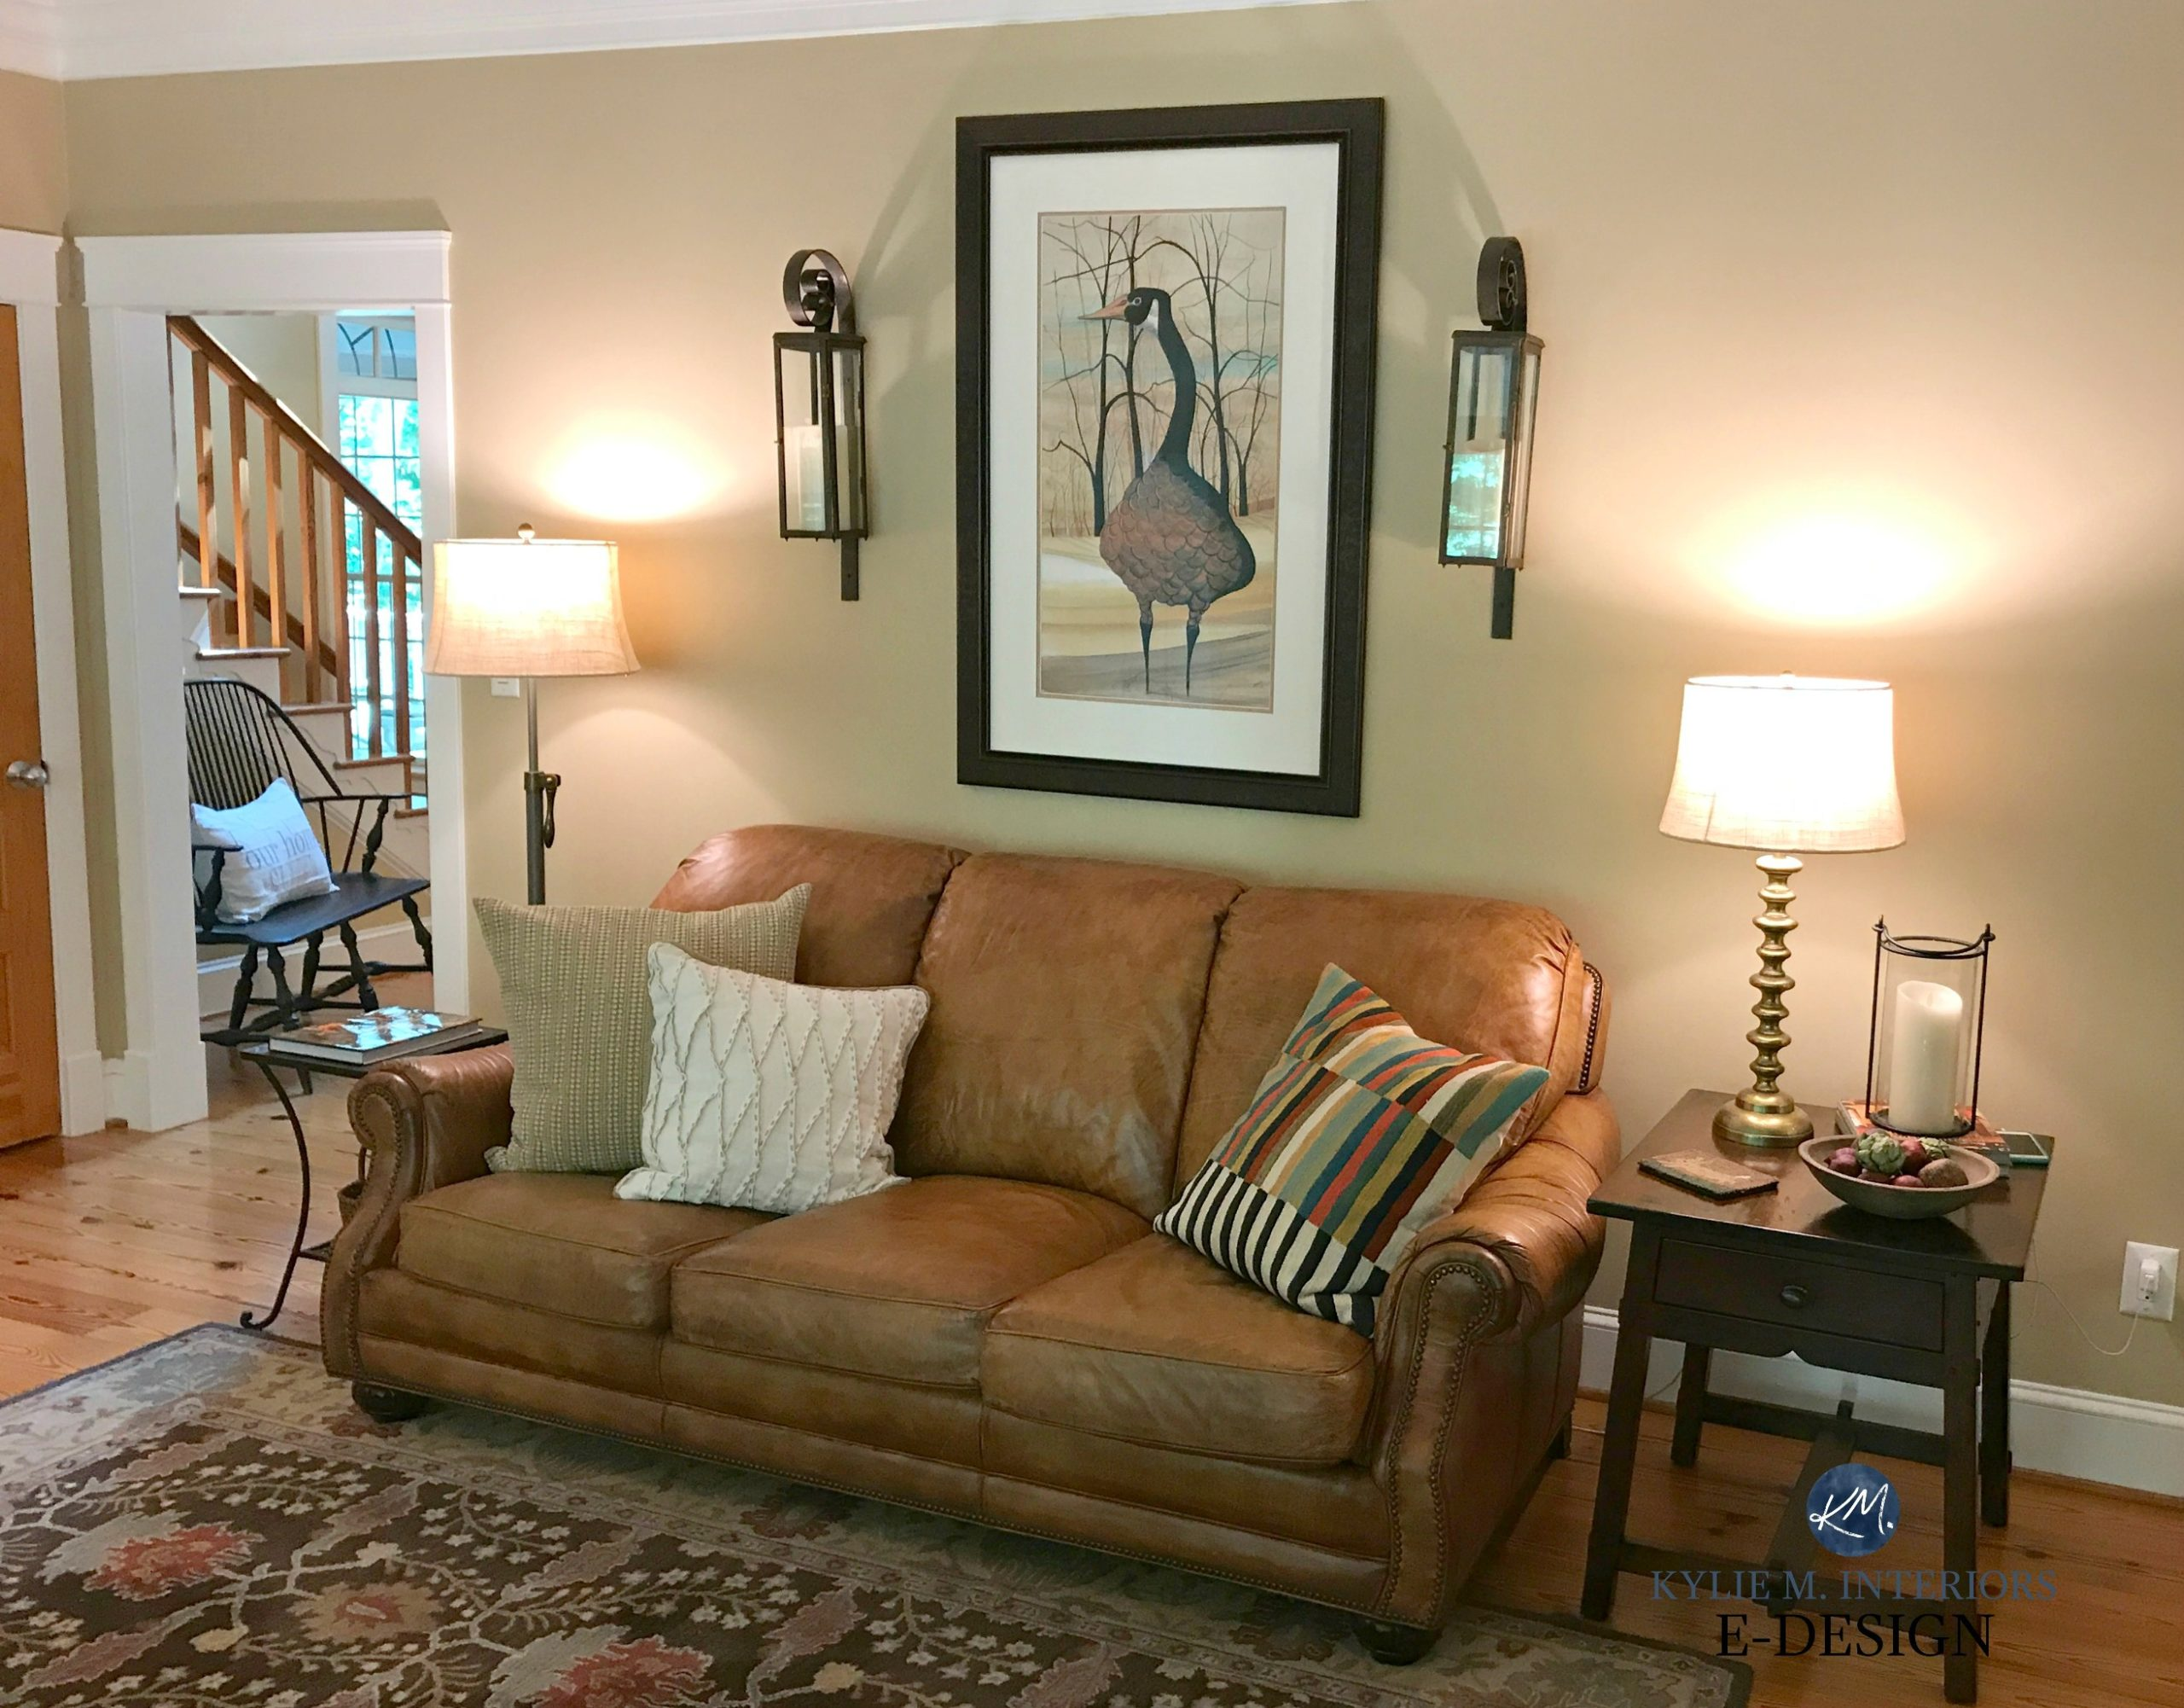 Benjamin Moore Lenox Tan, Farmhouse Country Style Living Room, Brown  Leather Couch. Pine Floor And Door. Kylie M E Design And Virtual, Online  Color ... Part 41